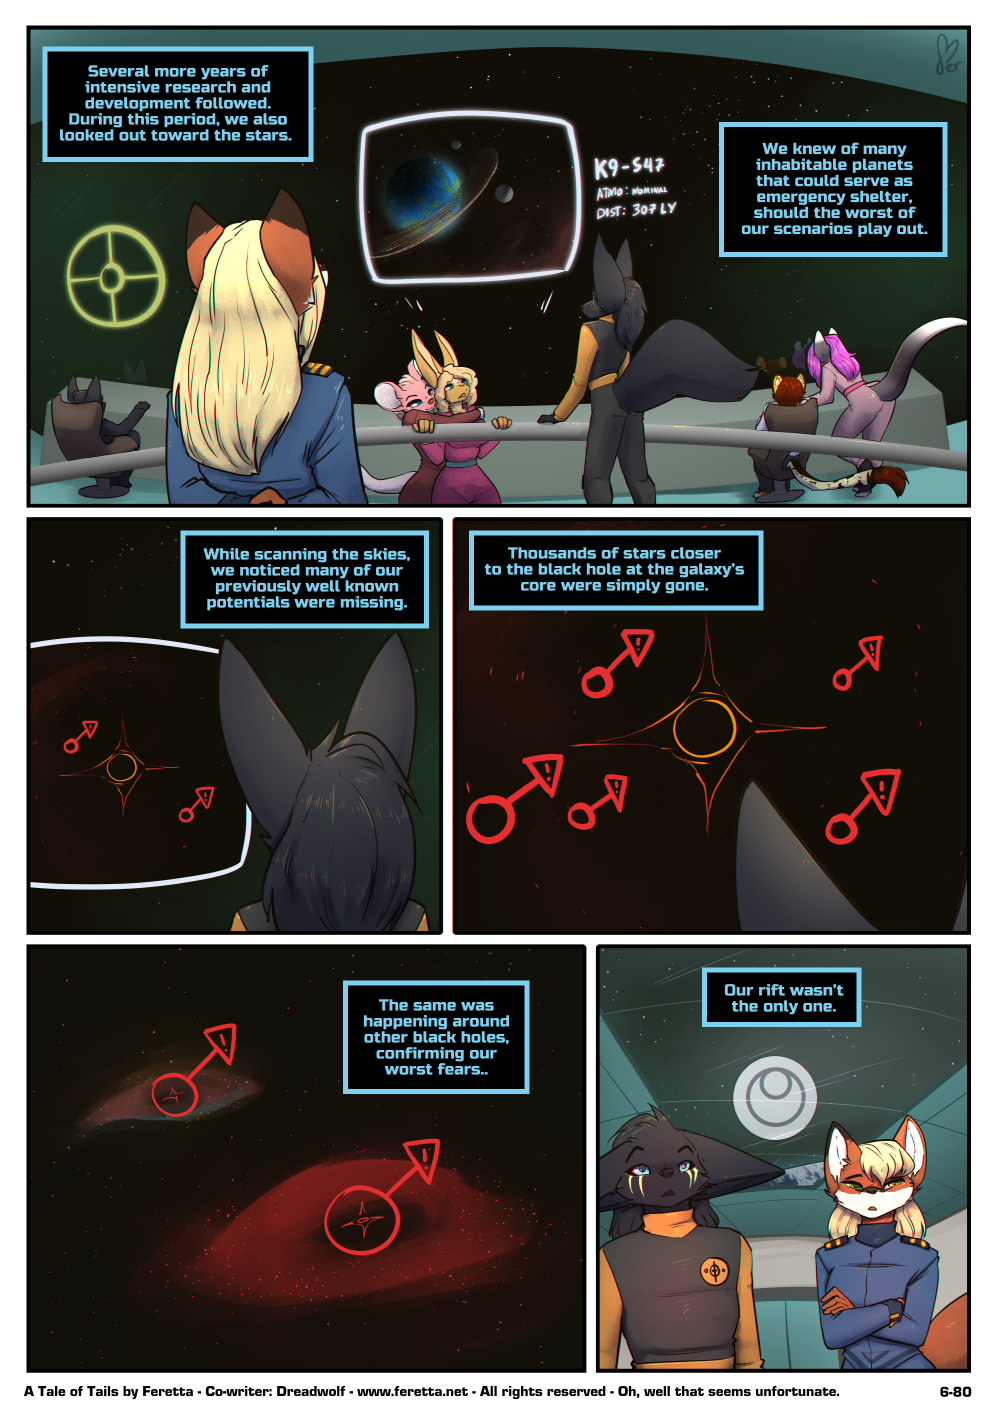 A Tale of Tails, 6-80